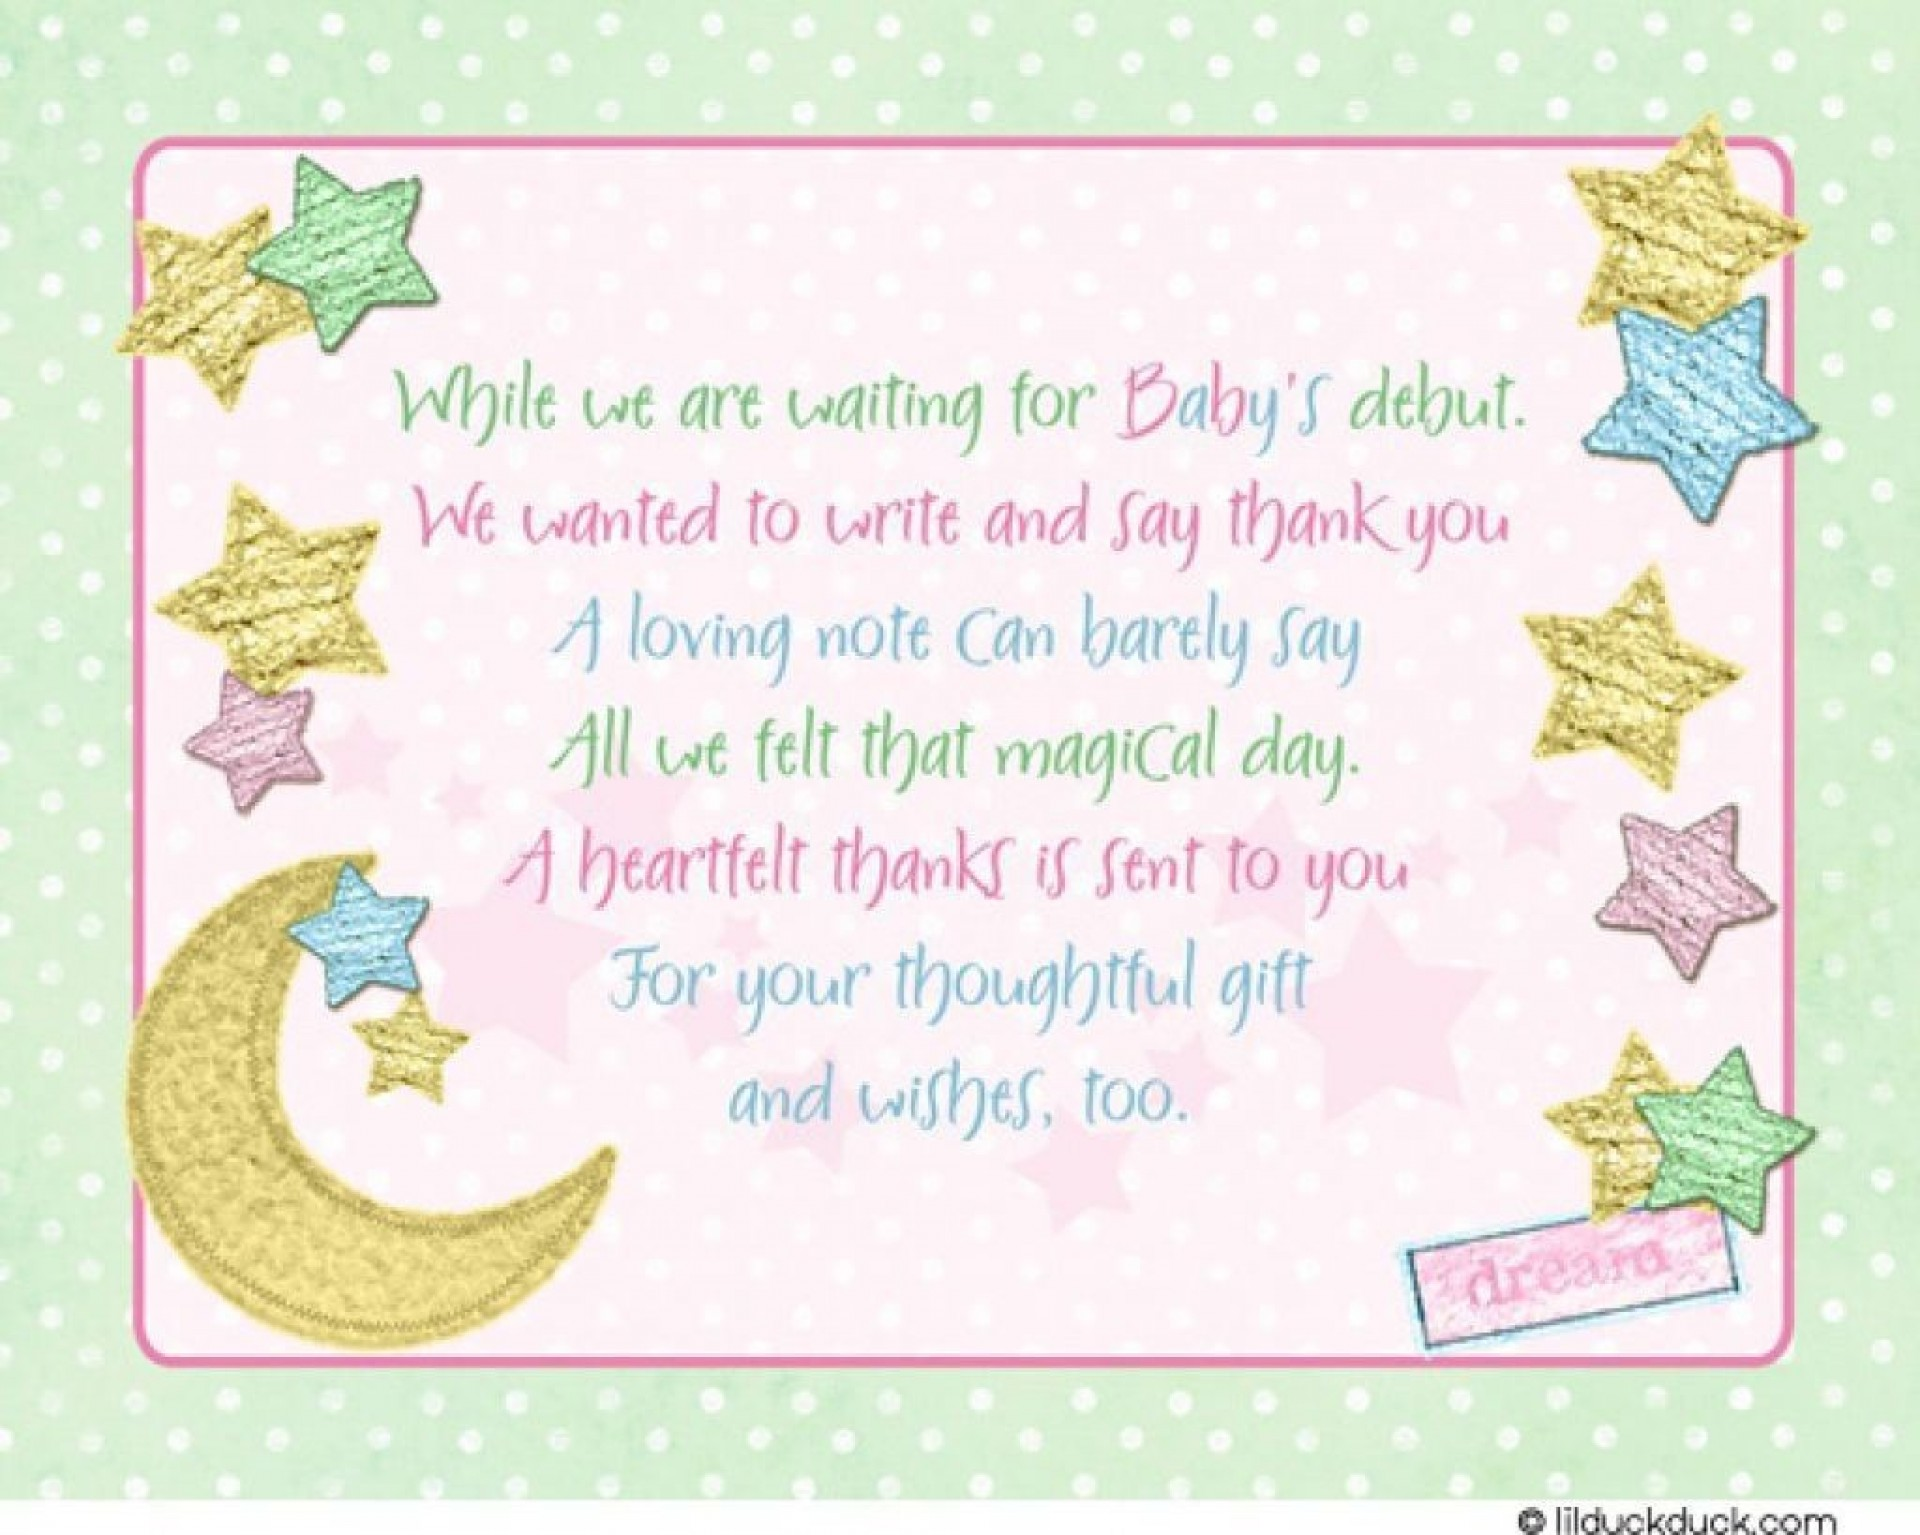 007 Unique Thank You Note Wording For Baby Shower Gift Highest Clarity  Card Sample Example Letter1920